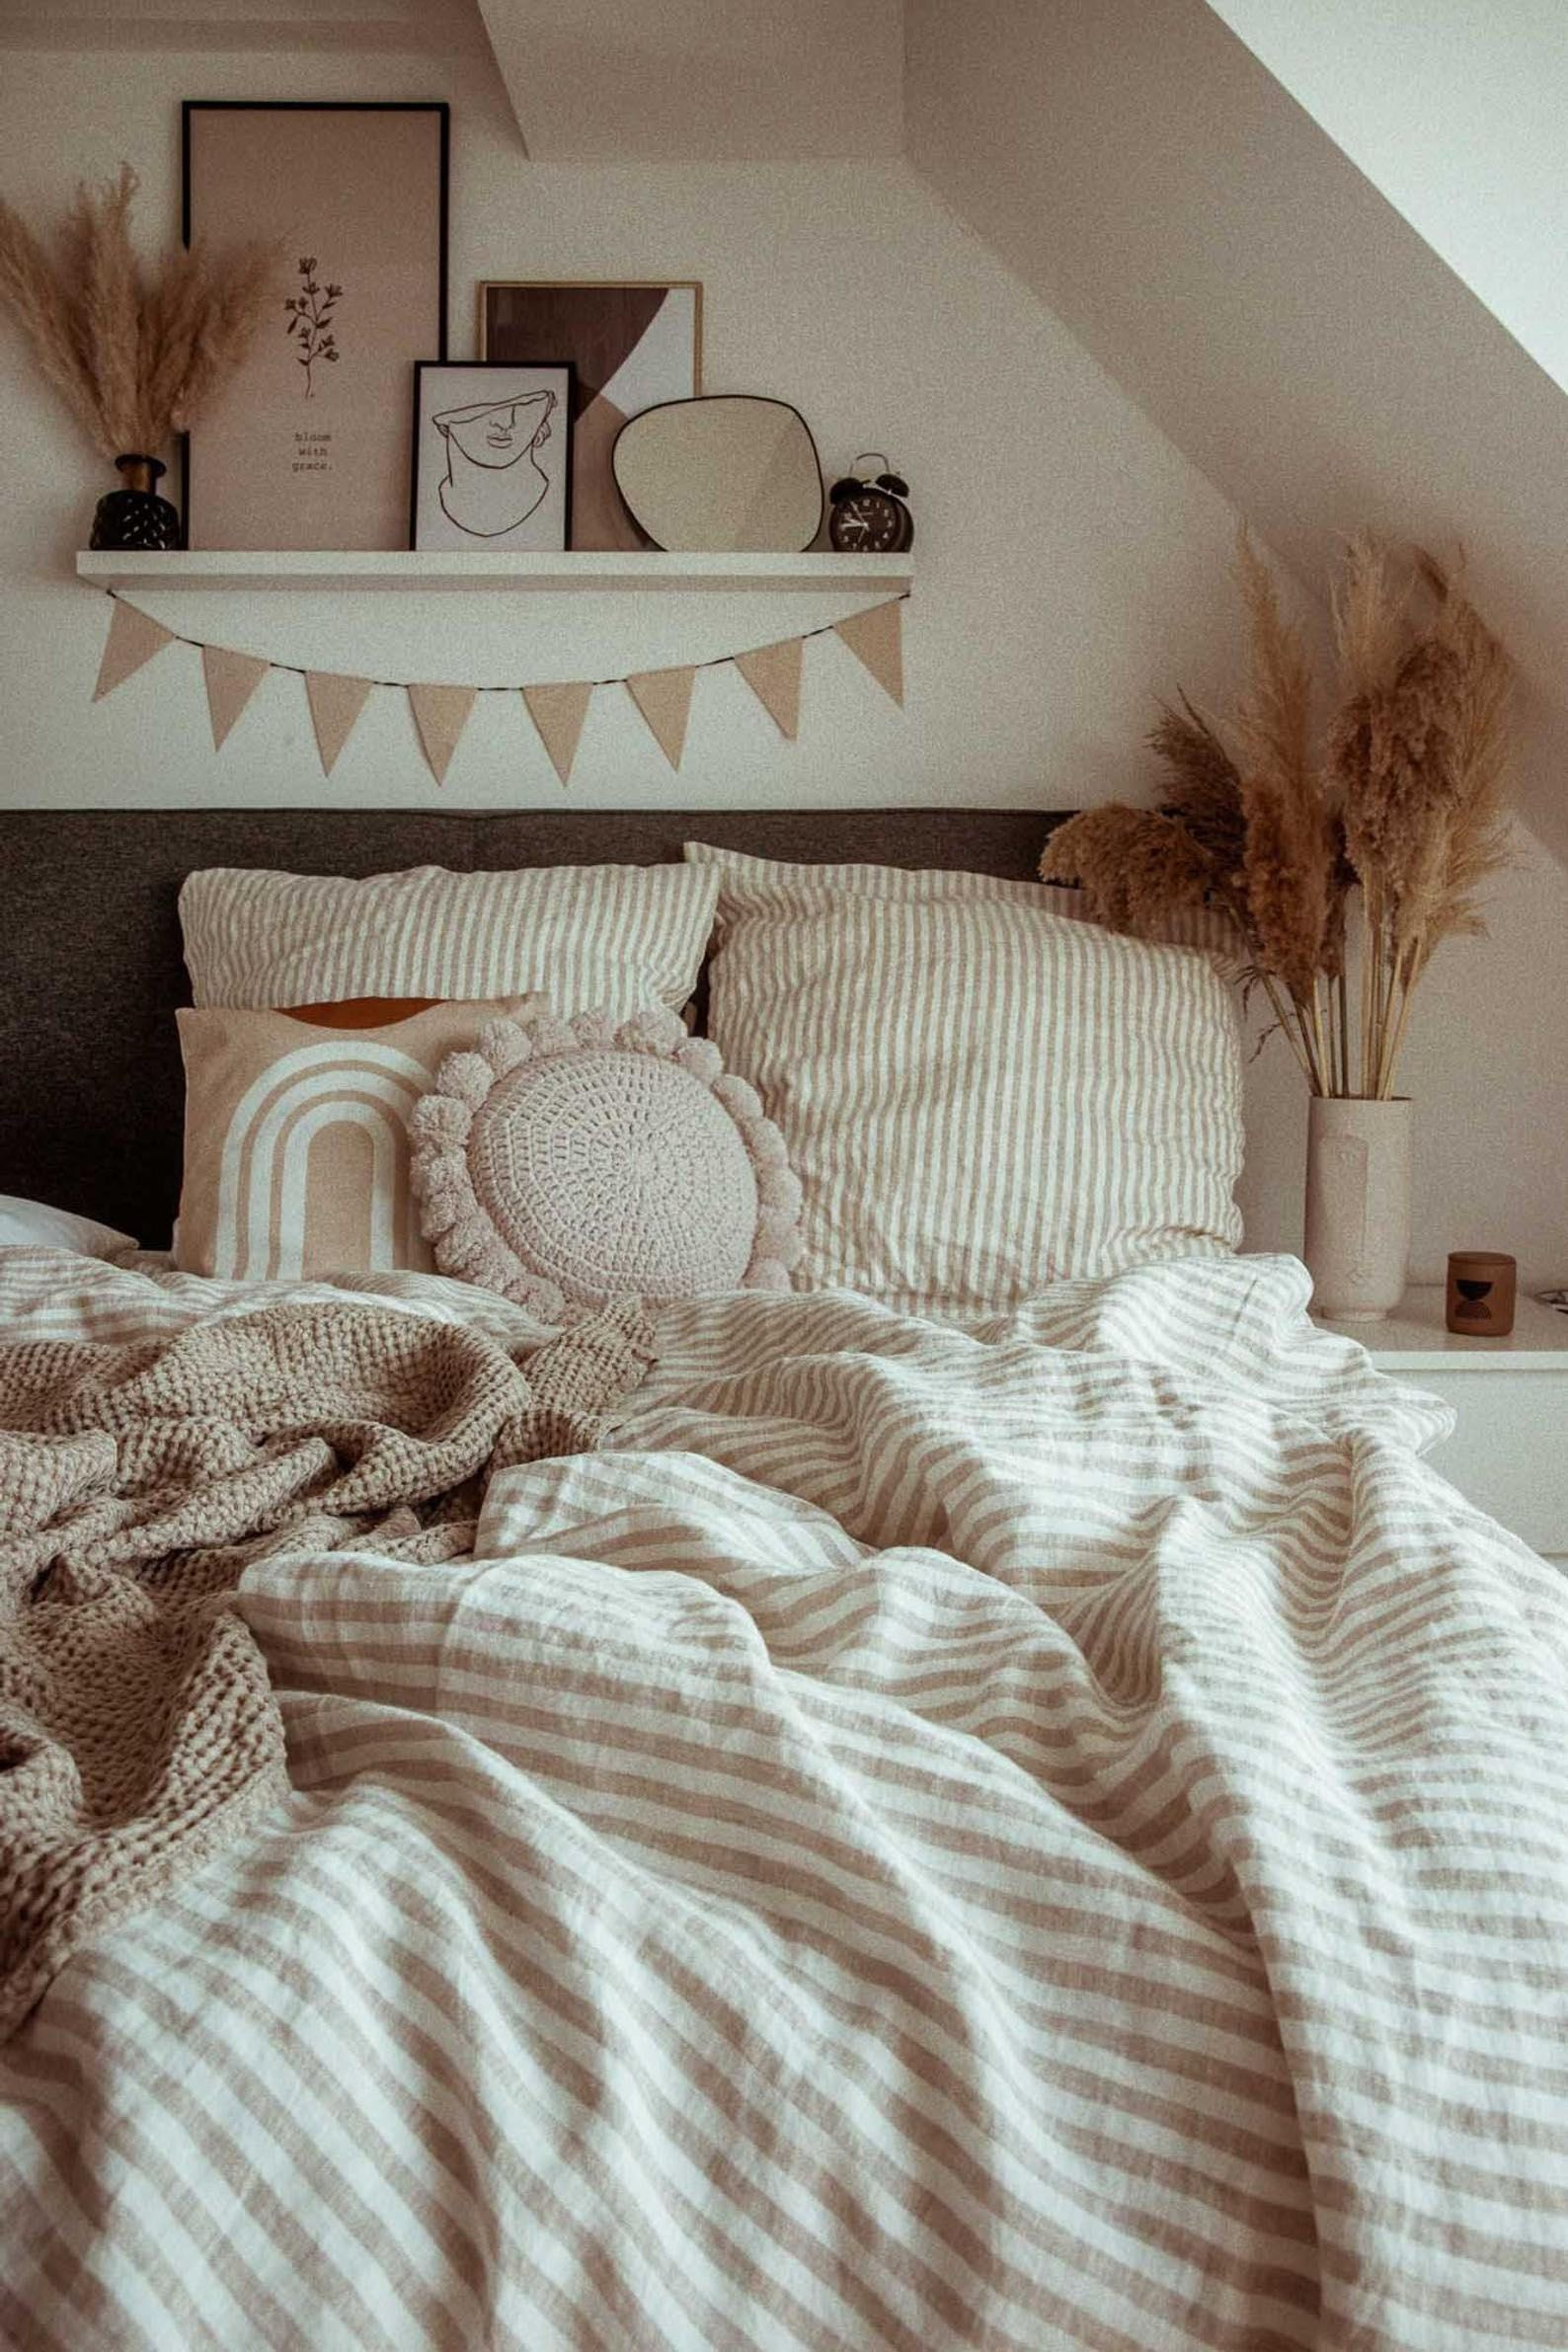 Give your bed an elegant makeover with stonewashed linen duvet set striped in off-white and natural linen (beige, oatmeal) colors. Made from softened linen fabric, this bed sheet set will add coziness to your bedroom and guarantee a good night's sleep.